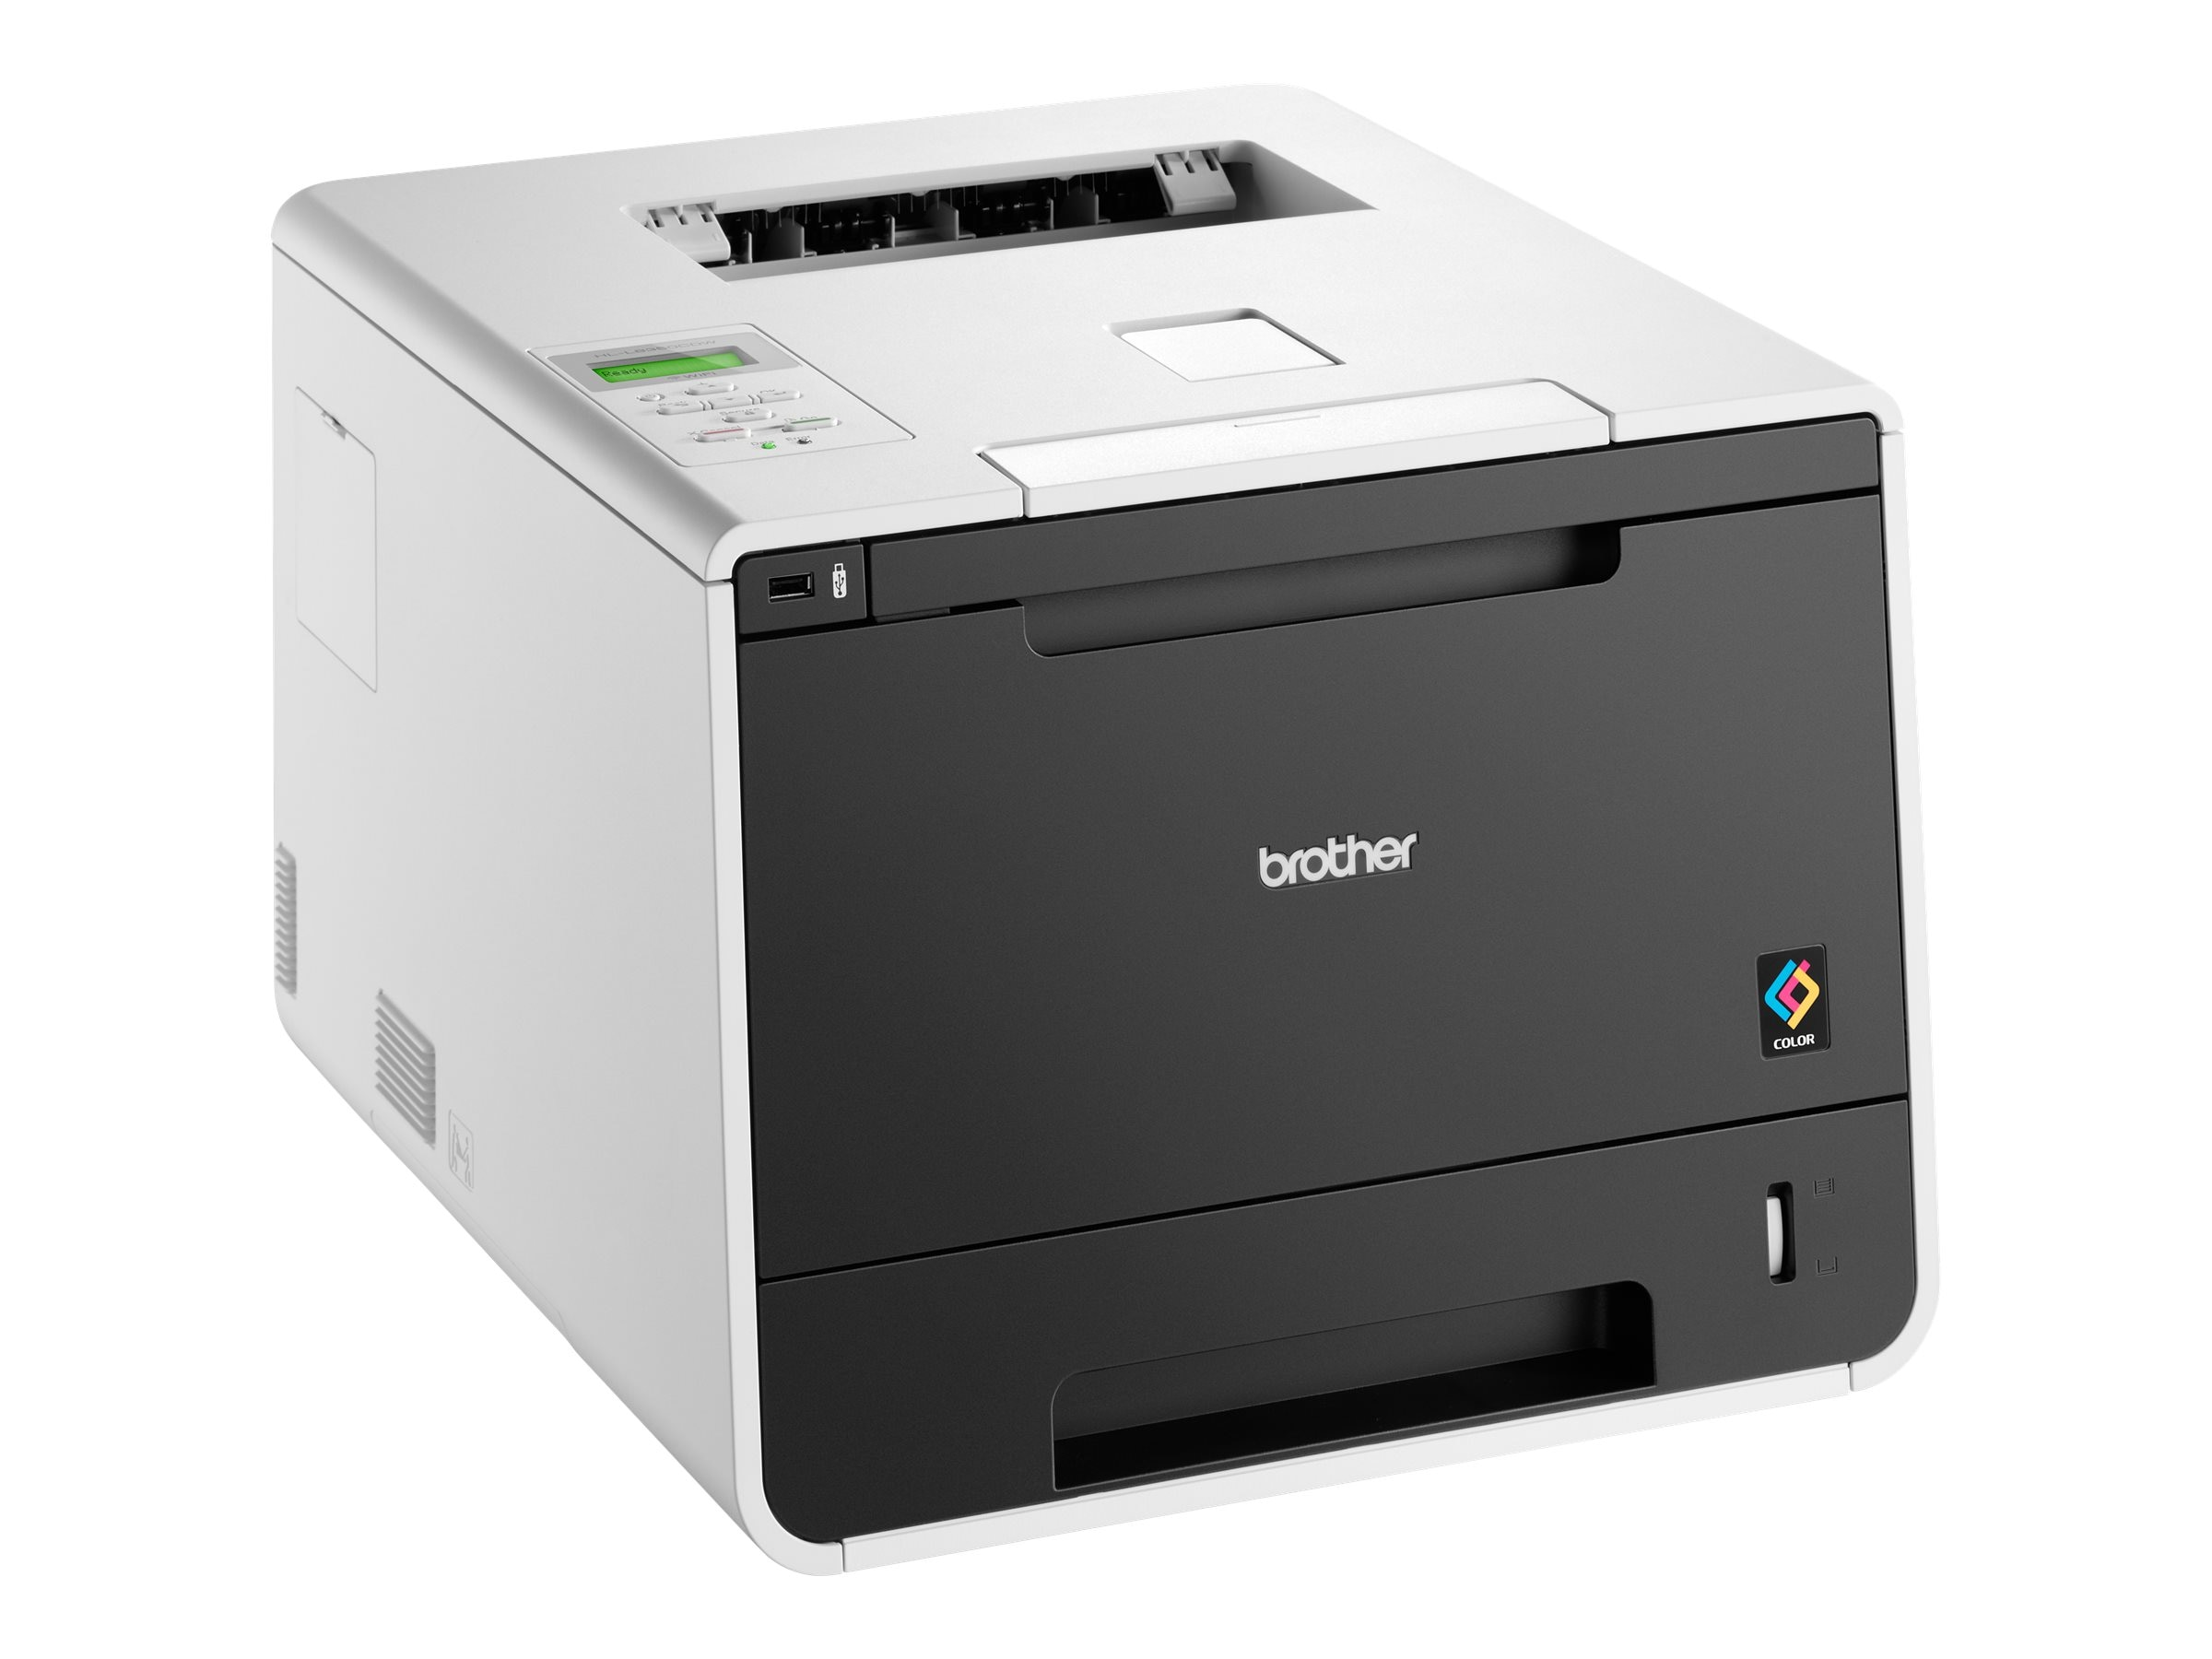 Brother HL-L8350CDW Image 6